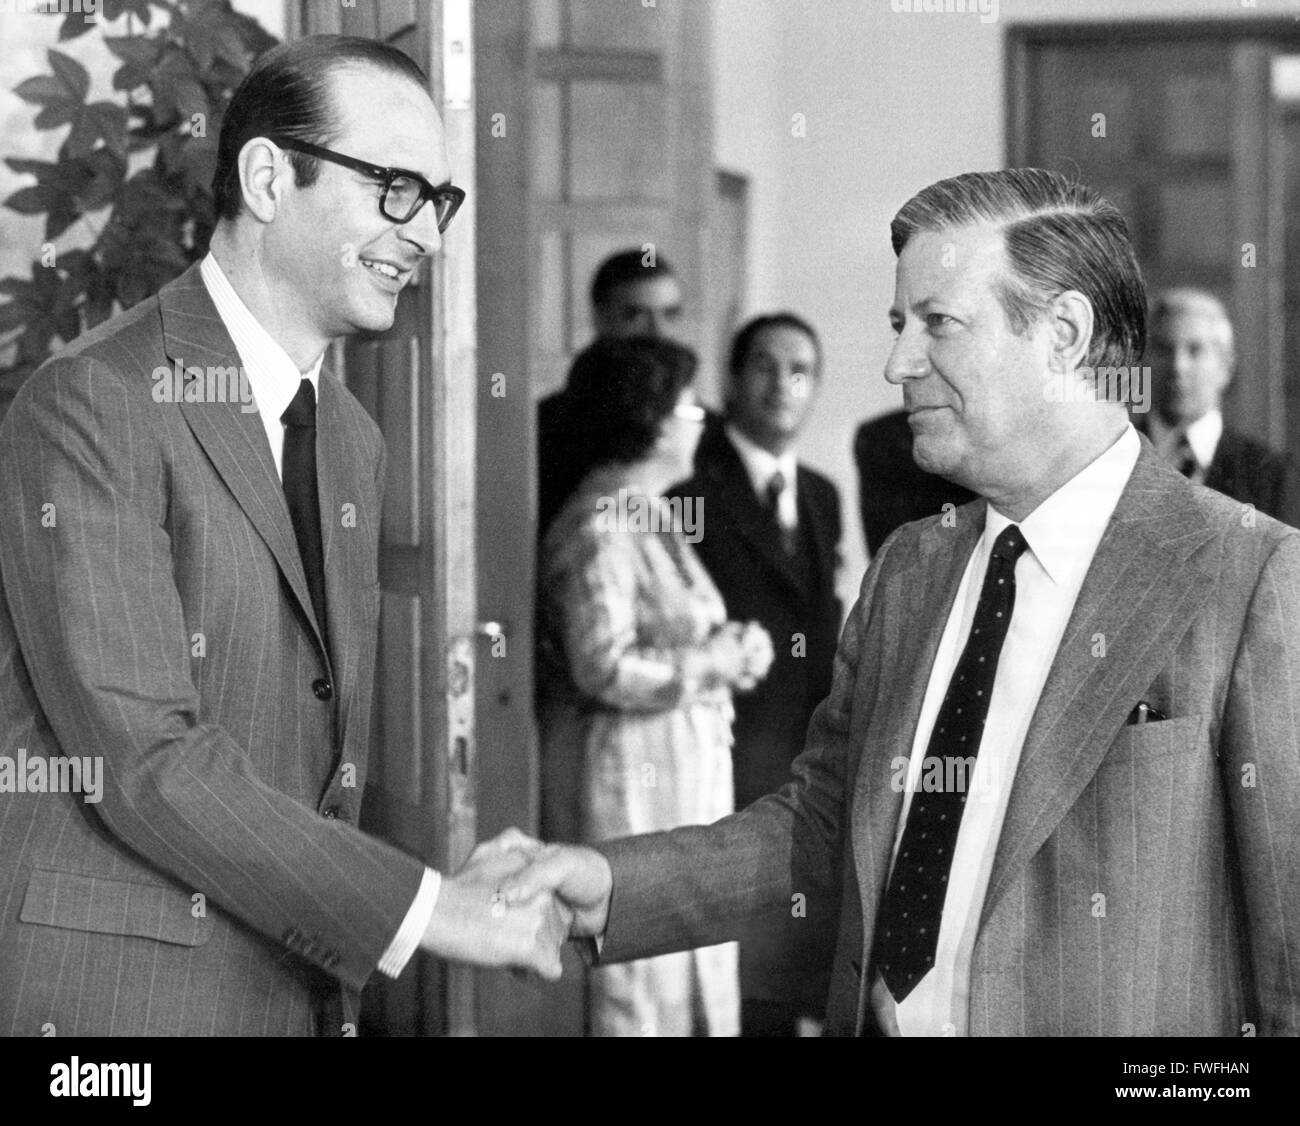 French prime minister Jacques Chirac (l) and German chancellor Helmut Schmidt (r) on 9 August 1974 in Bonn. - Stock Image